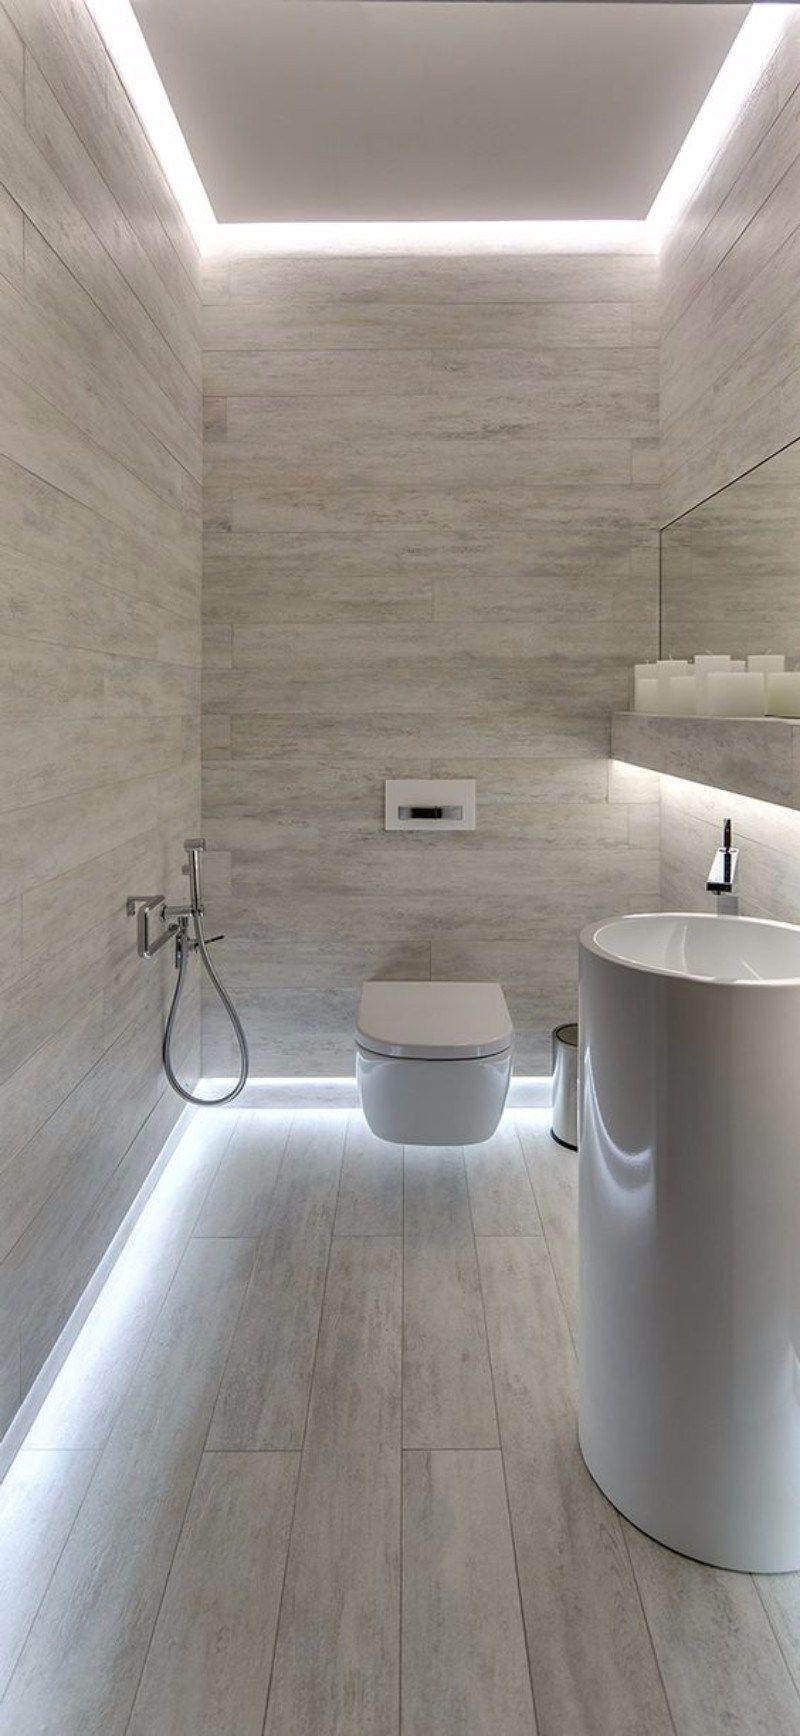 20 Unusual Modern Bathroom Design Ideas Home Magez Minimalism Interior Modern Bathroom Design Minimal Interior Design